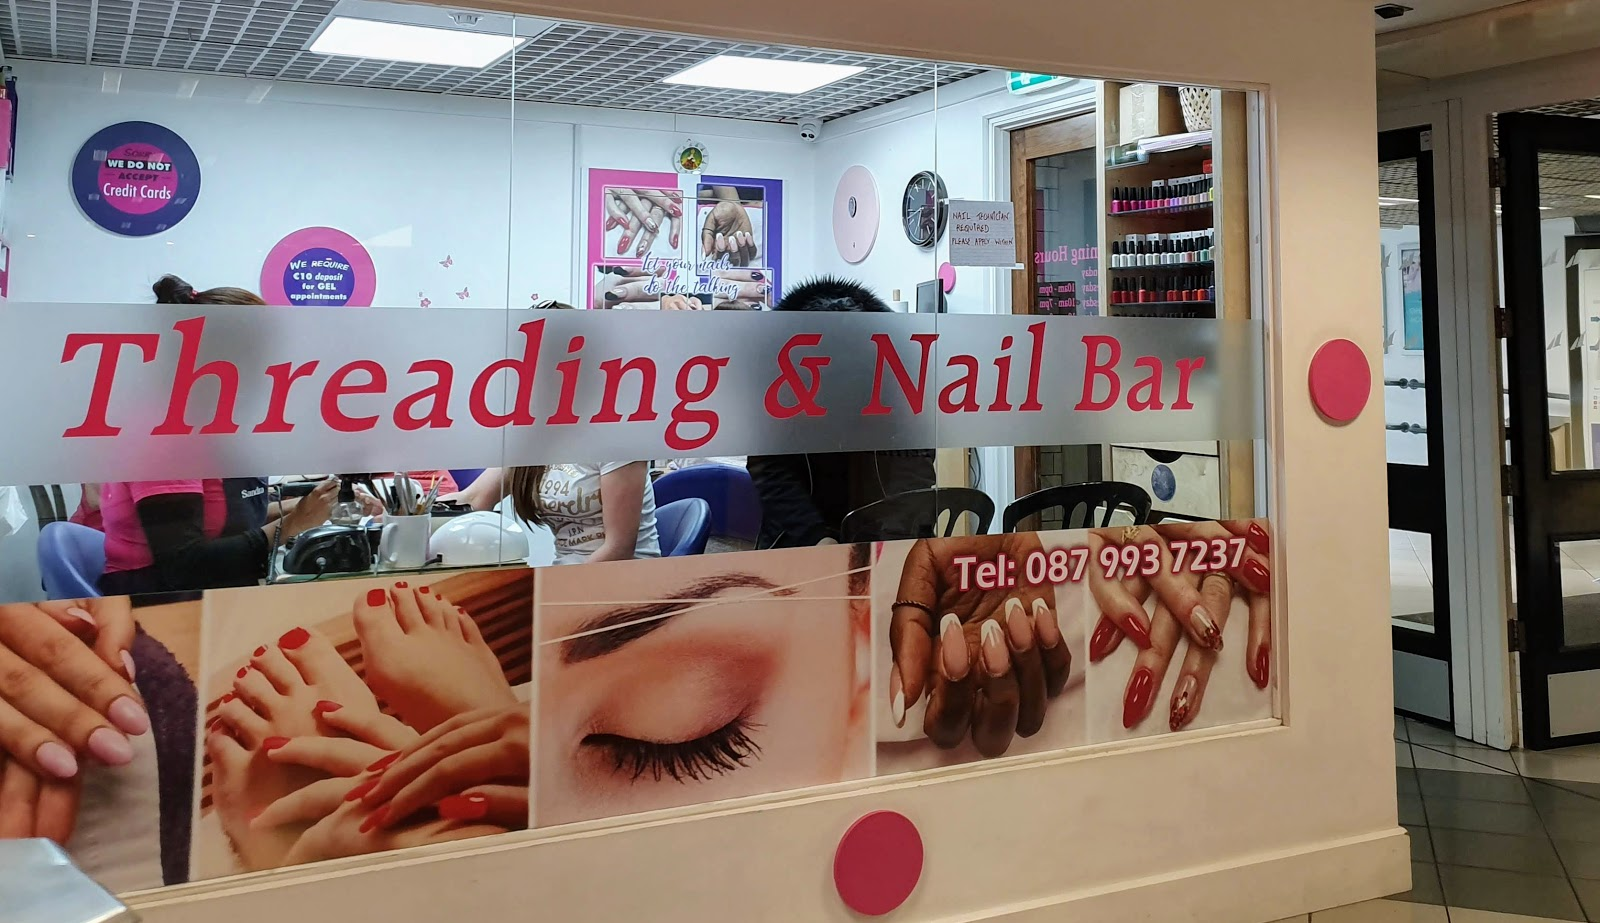 Galway Threading and Nail bar -phone   087 993  7237.   Exterior window, with pictures of the work they do on nails and eyebrows.